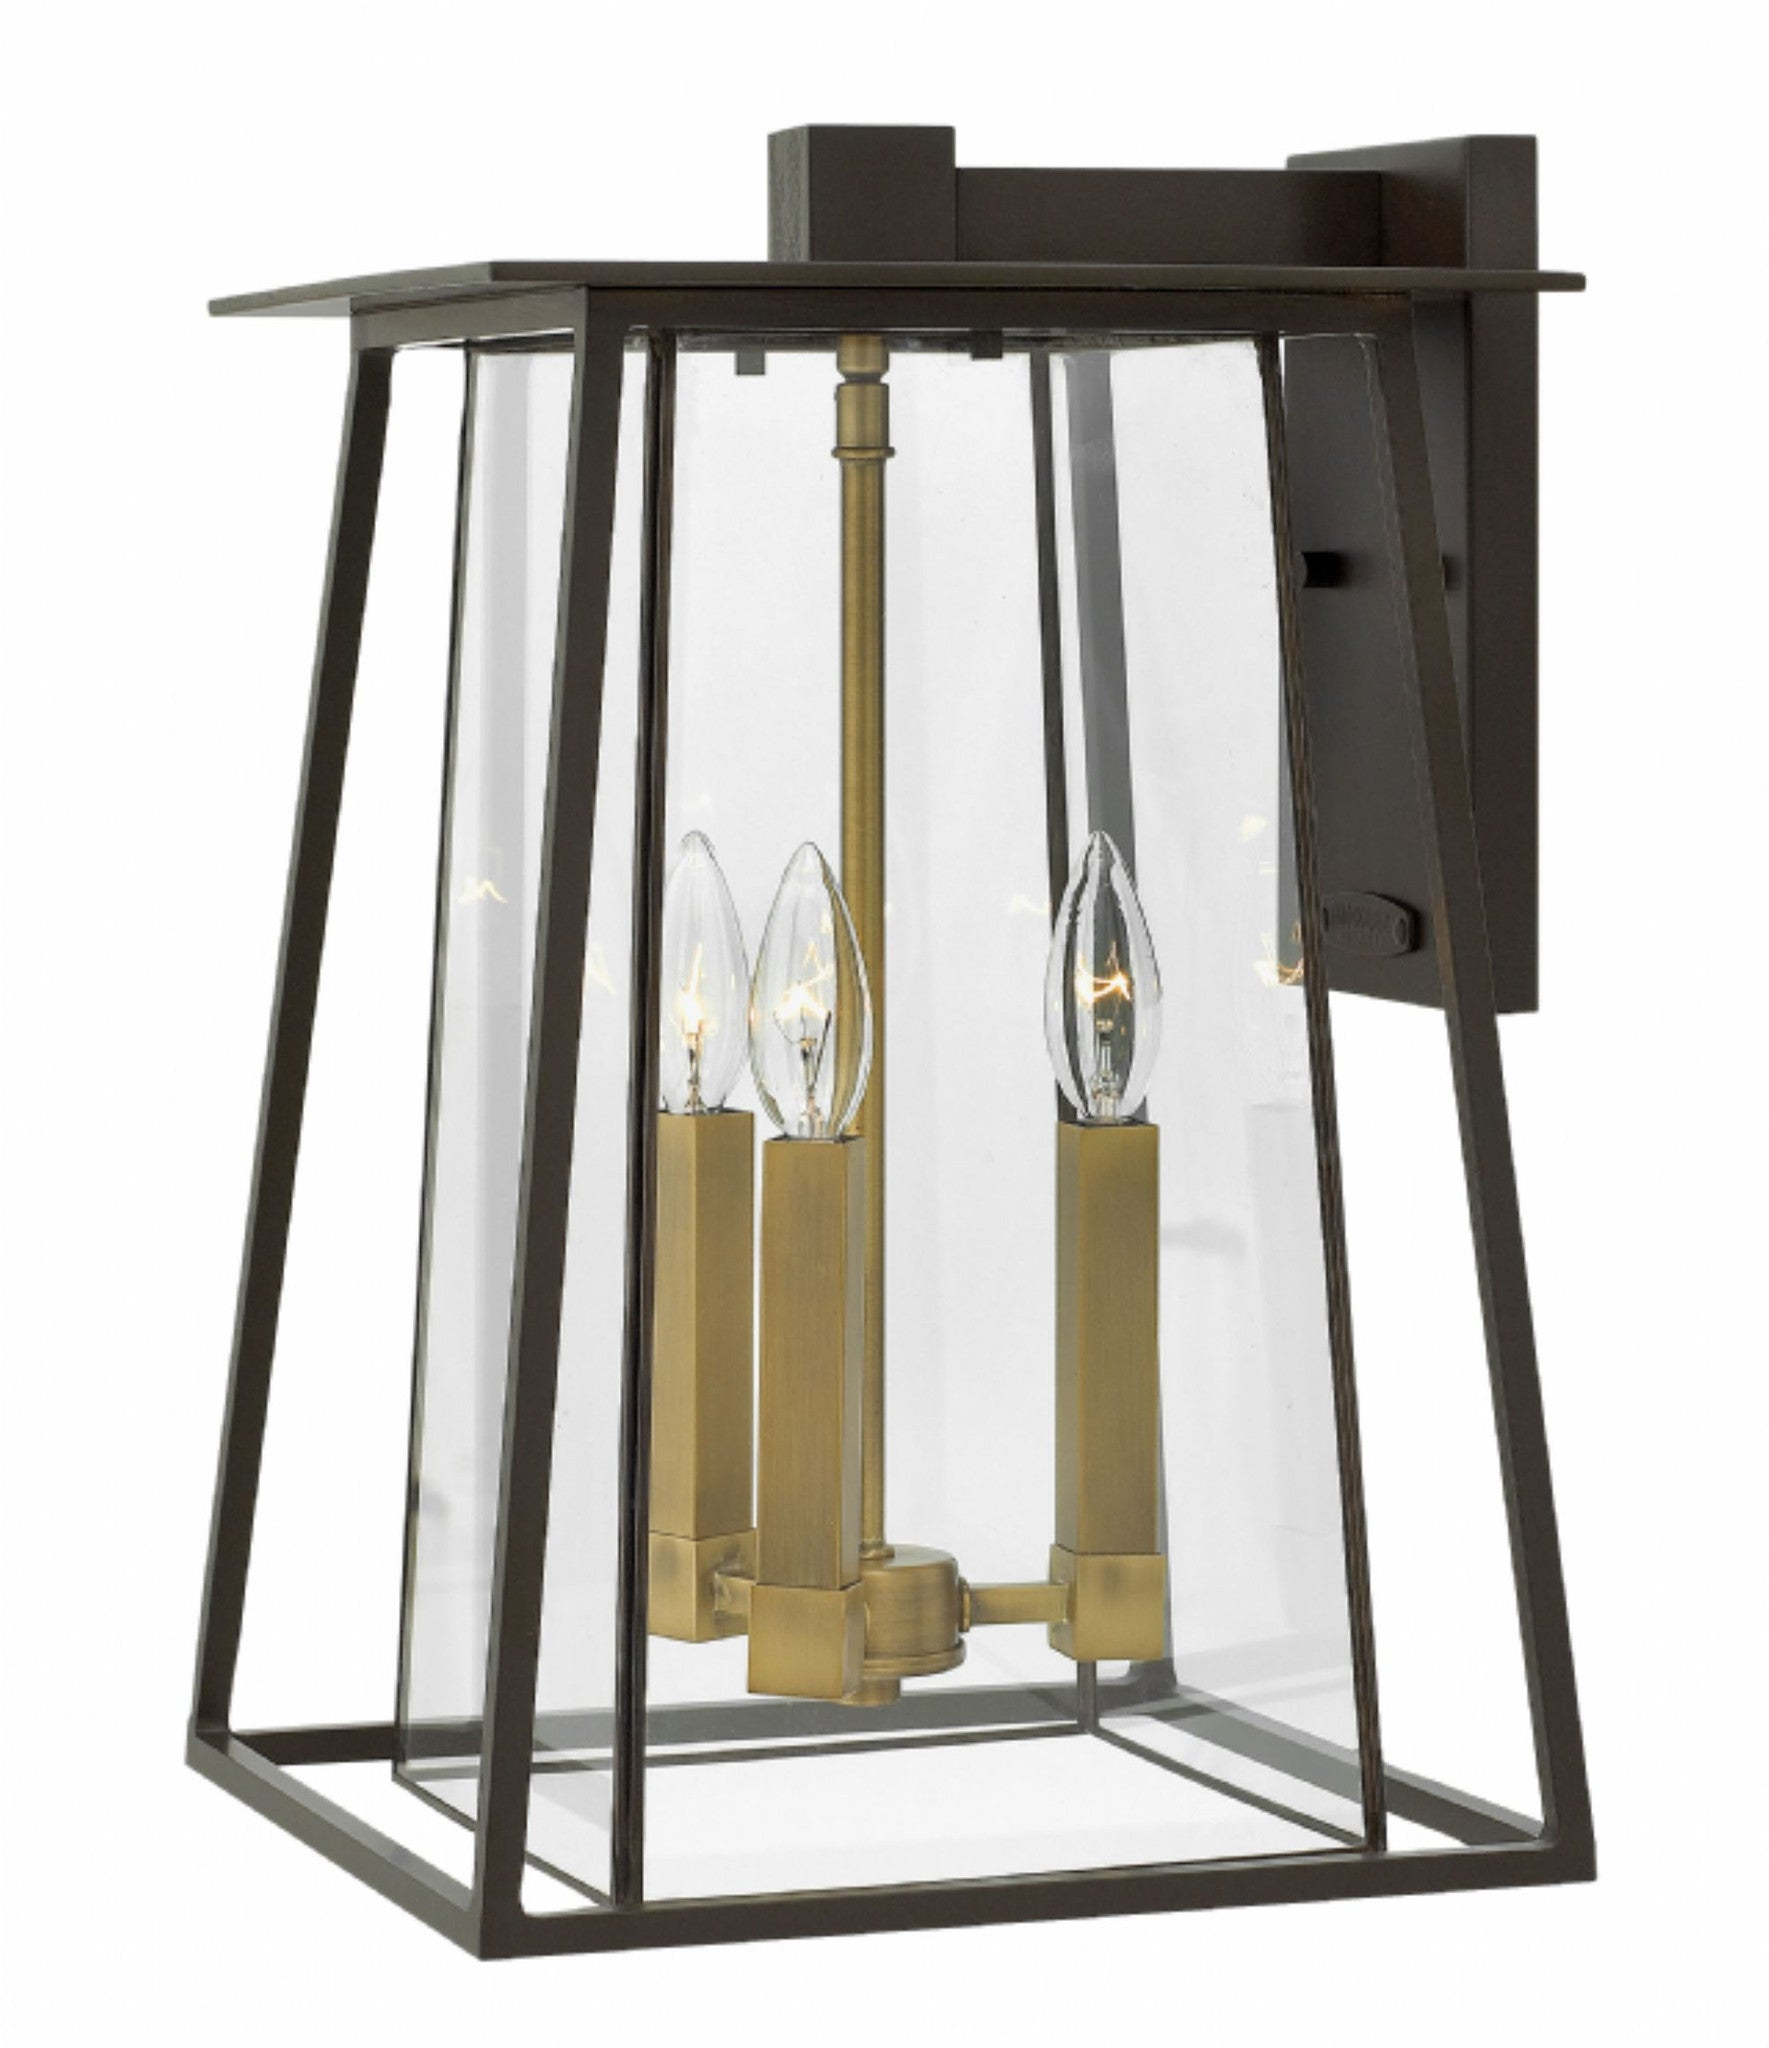 3 Light Walker Outdoor Wall Lantern in Buckeye Bronze with brass accents by Hinkley 2105KZ